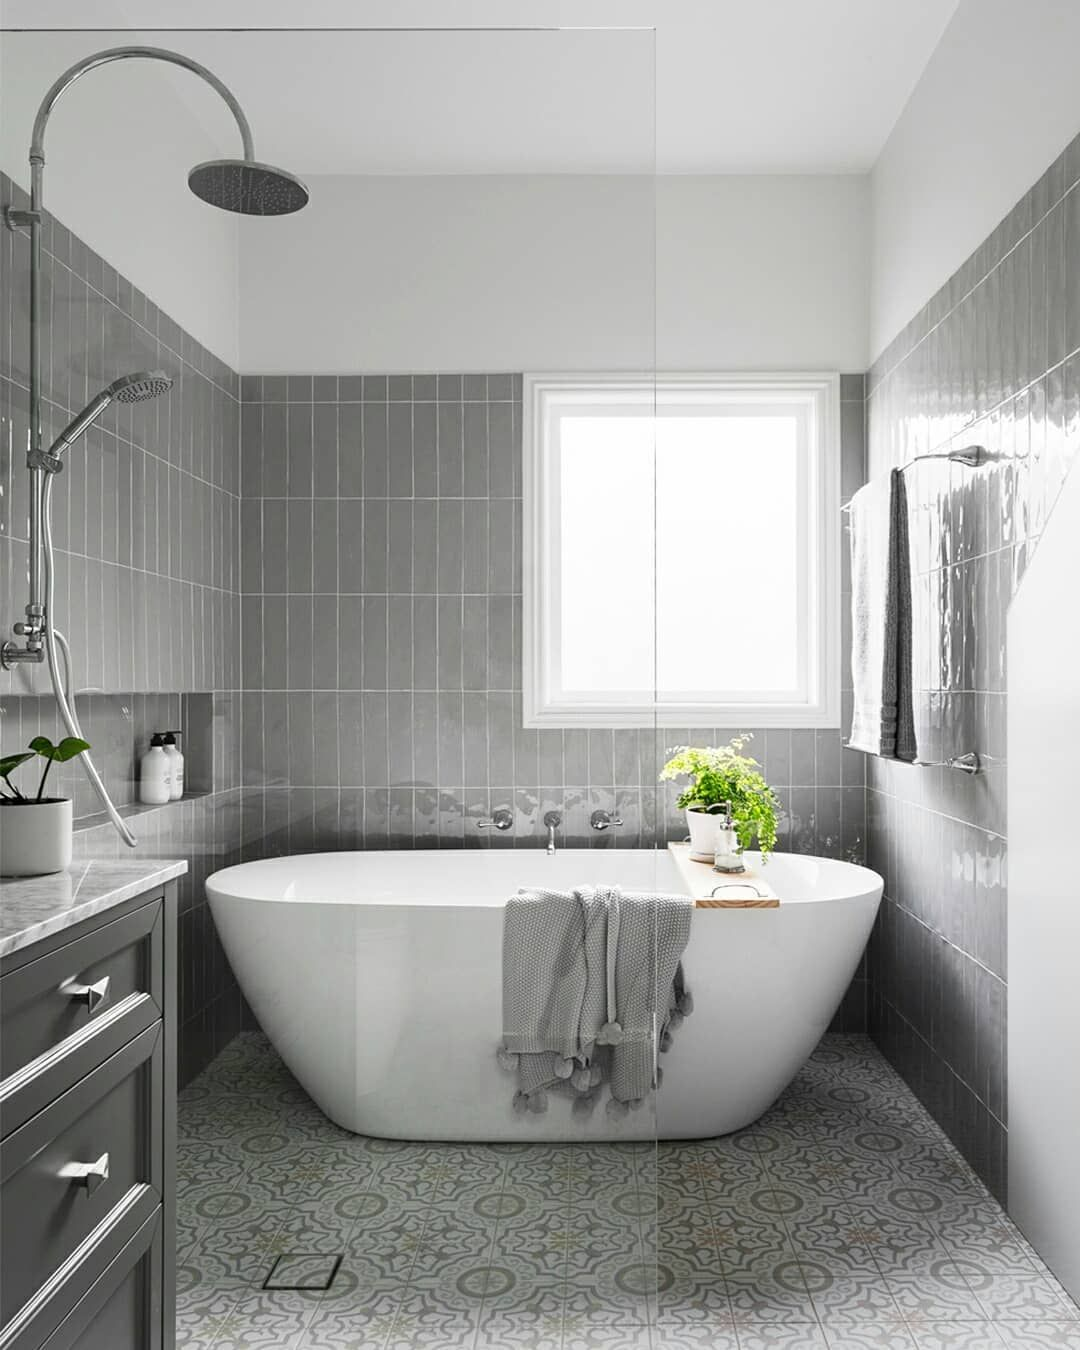 Reece Bathrooms On Instagram Make The Most Of A Smaller Footprint With An Integrated Wet Zone And Achieve Reece Bathroom Wet Bathroom Ideas Wet Room Bathroom